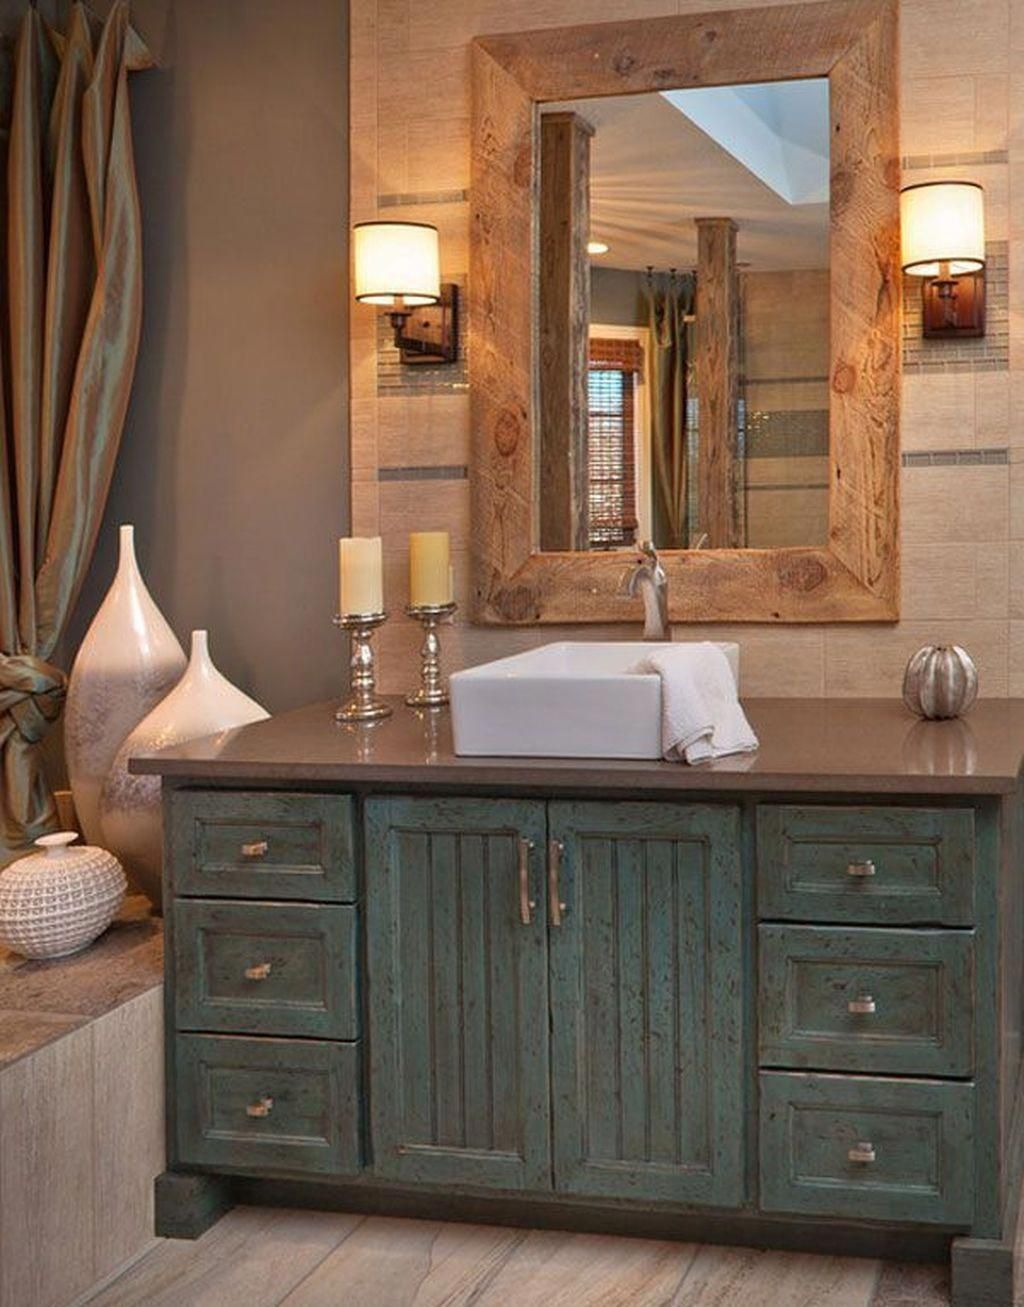 Awesome 49 Lovely Rustic Small Bathroom Remodel Ideas